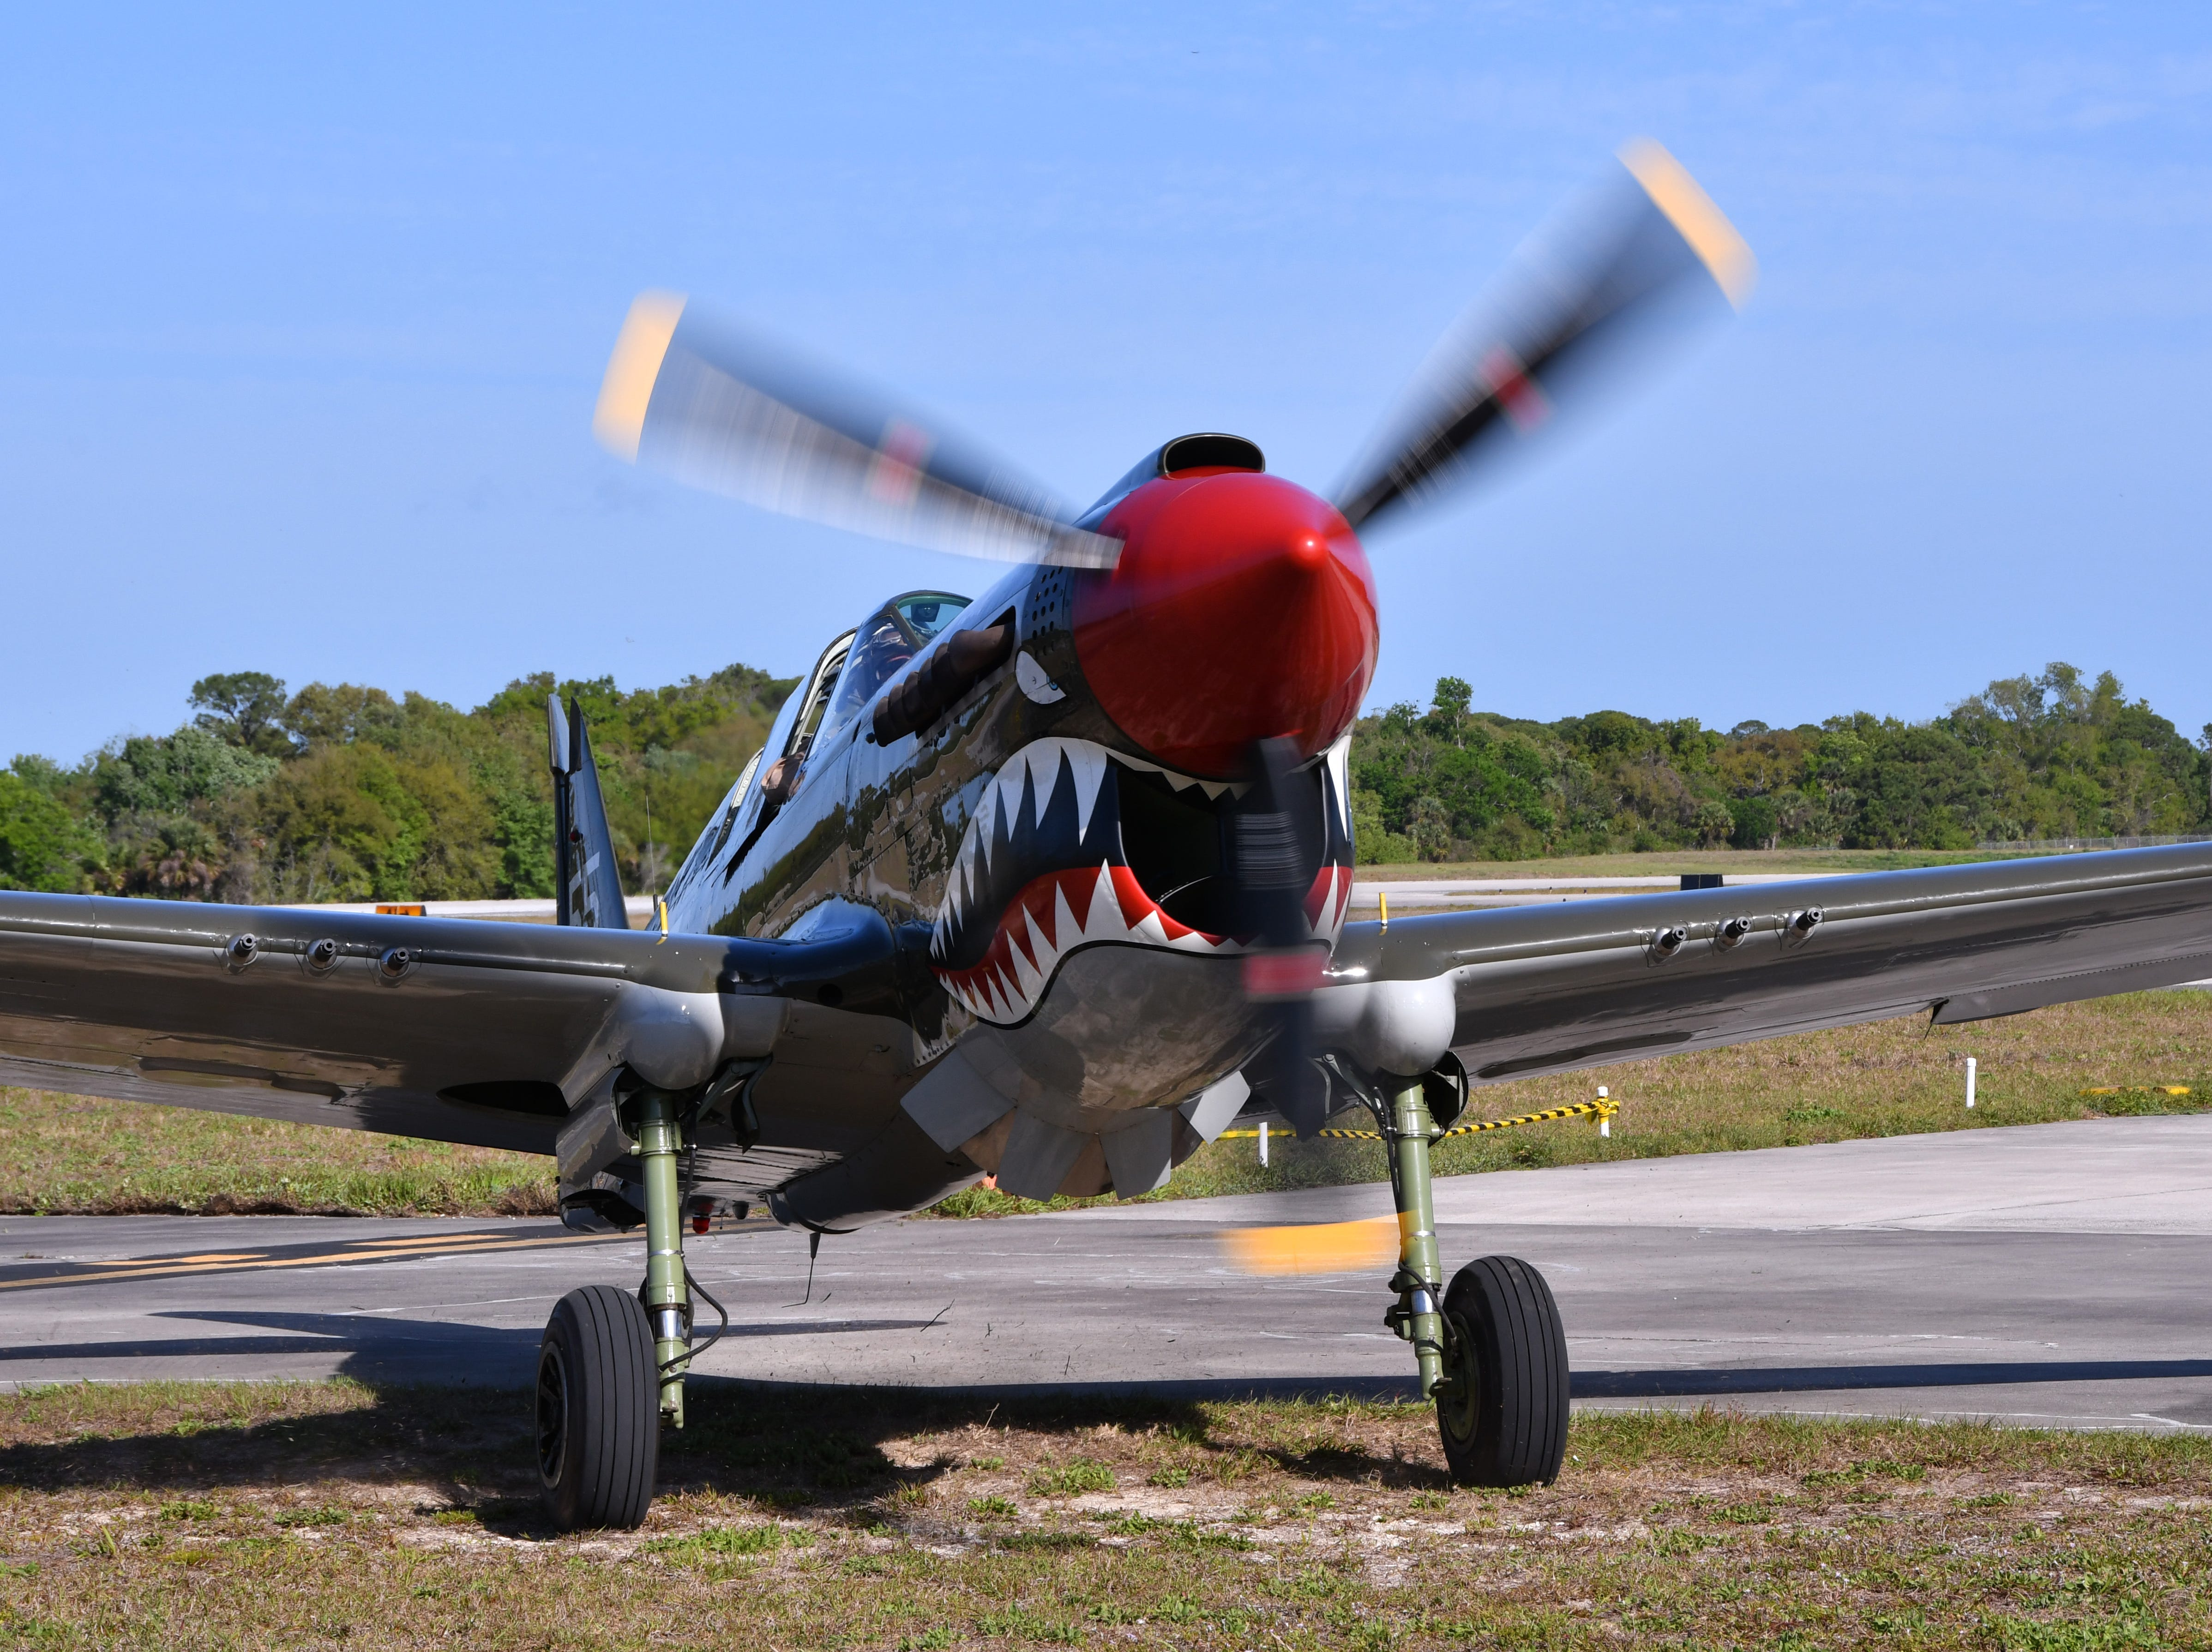 The P-40 American Dream, one of only five known to exist, with two confirmed kills, prepares for take off. The 2019 Space Coast Warbird Air Show held their media day Thursday, promoting the Air Show that runs Friday, Saturday and Sunday at Space Coast Regional Airport in Titusville, with a Friday afternoon and evening show with fireworks, and shows Saturday and Sunday afternoon.